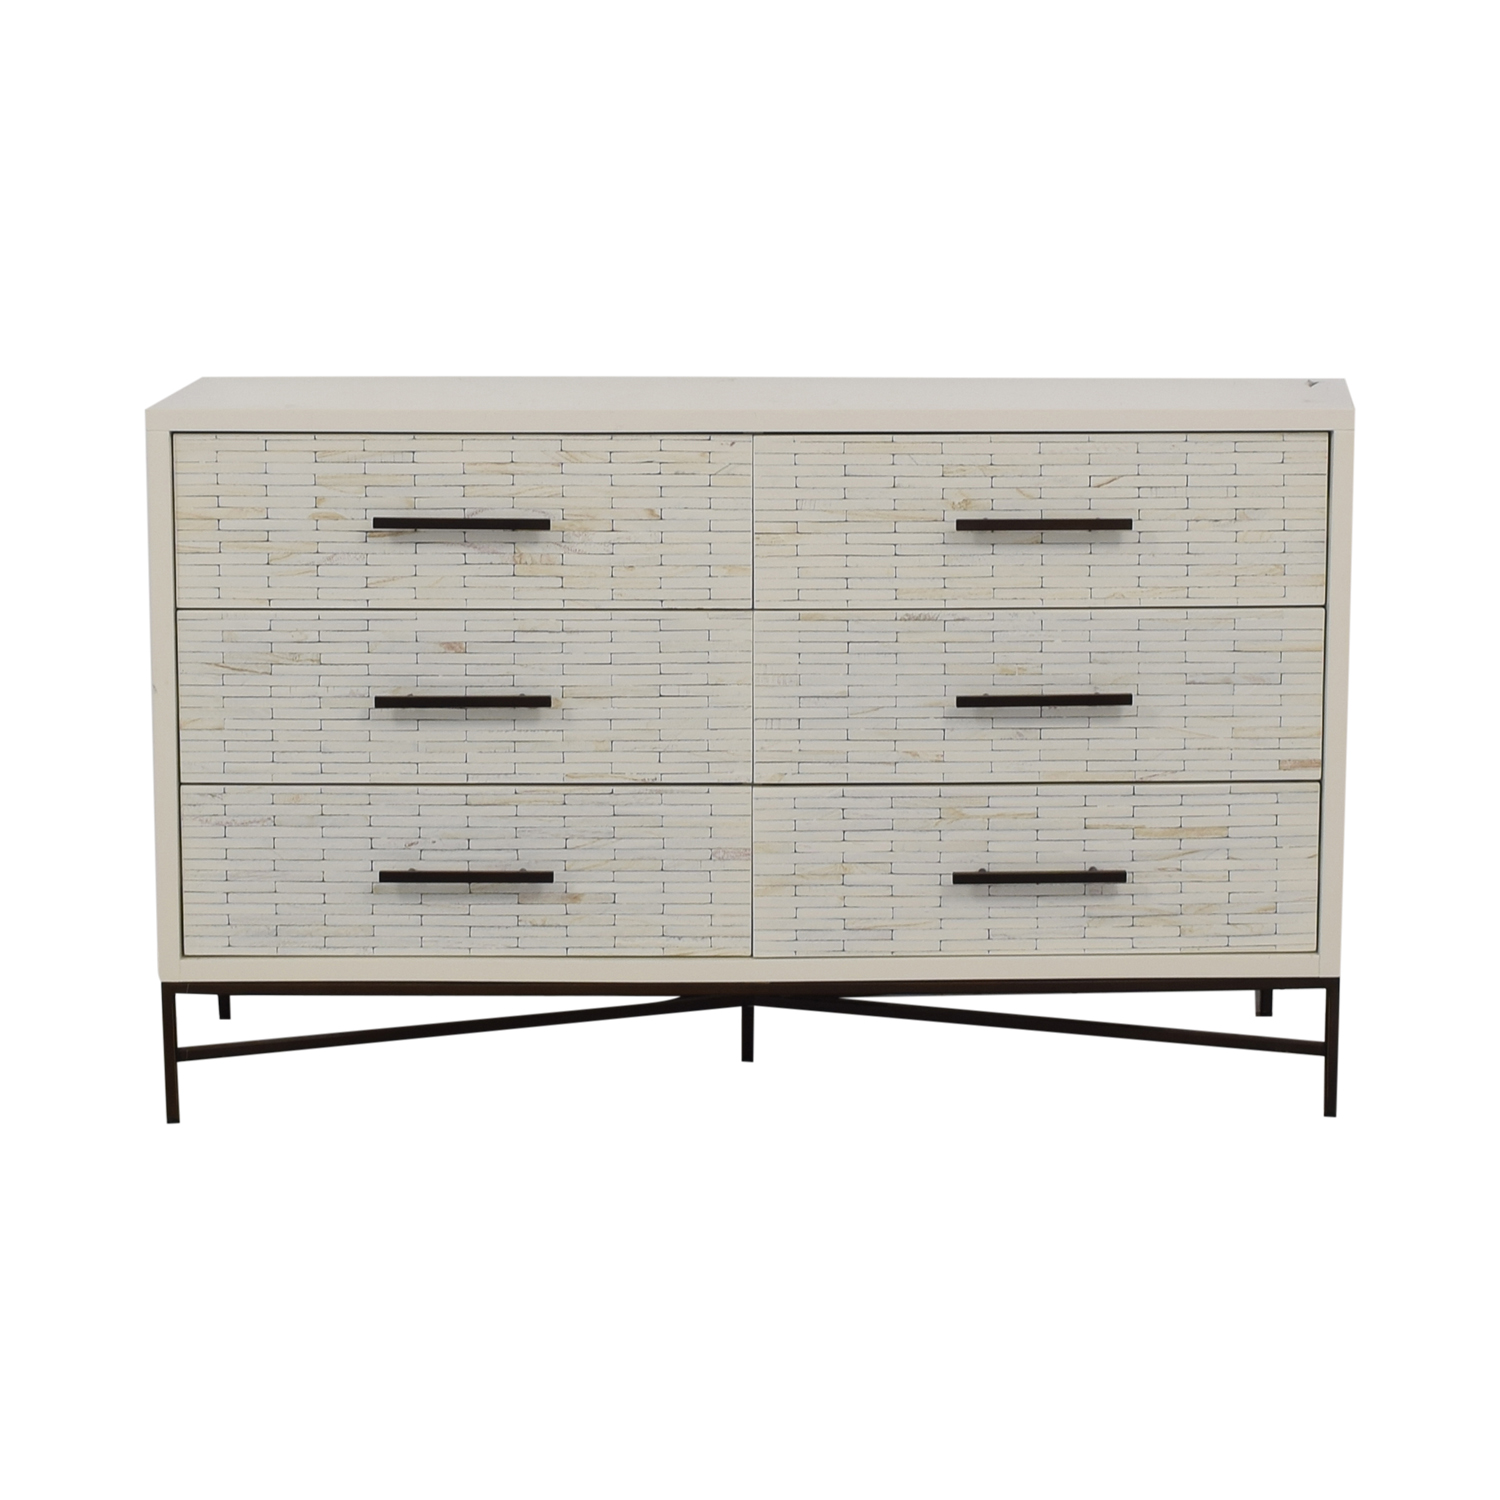 West Elm West Elm White Six-Drawer Dresser dimensions